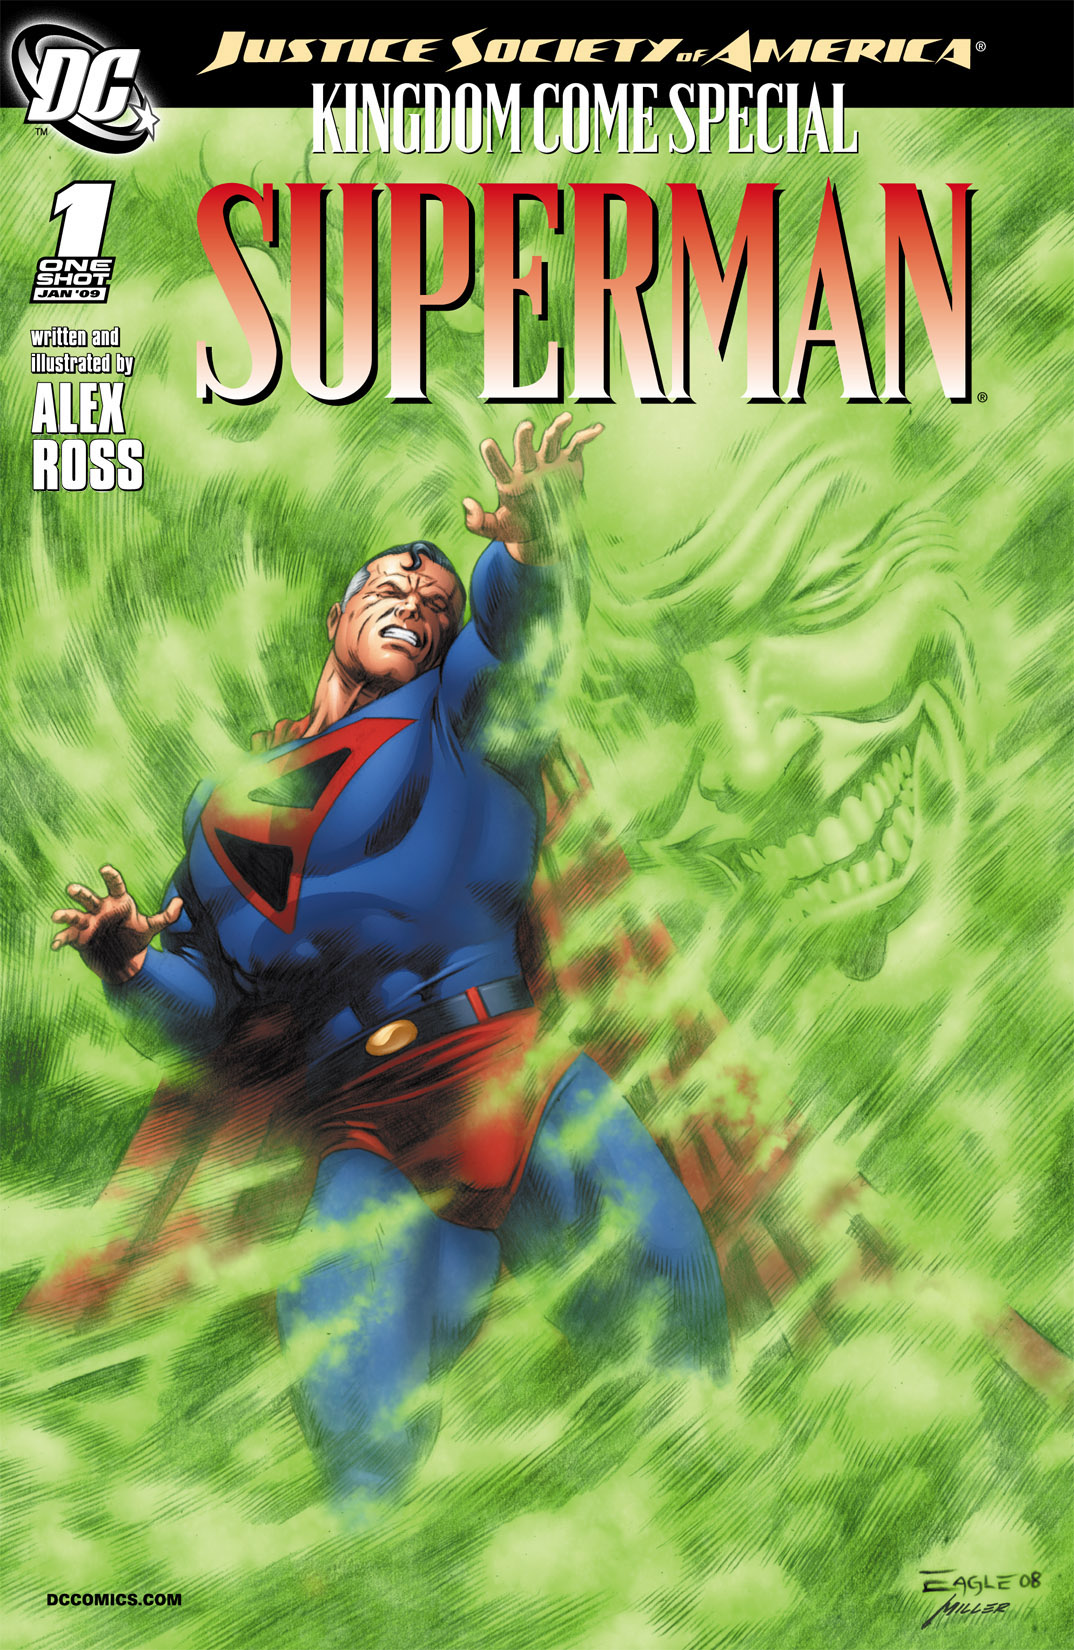 Read online JSA Kingdom Come Special: Superman comic -  Issue # Full - 2